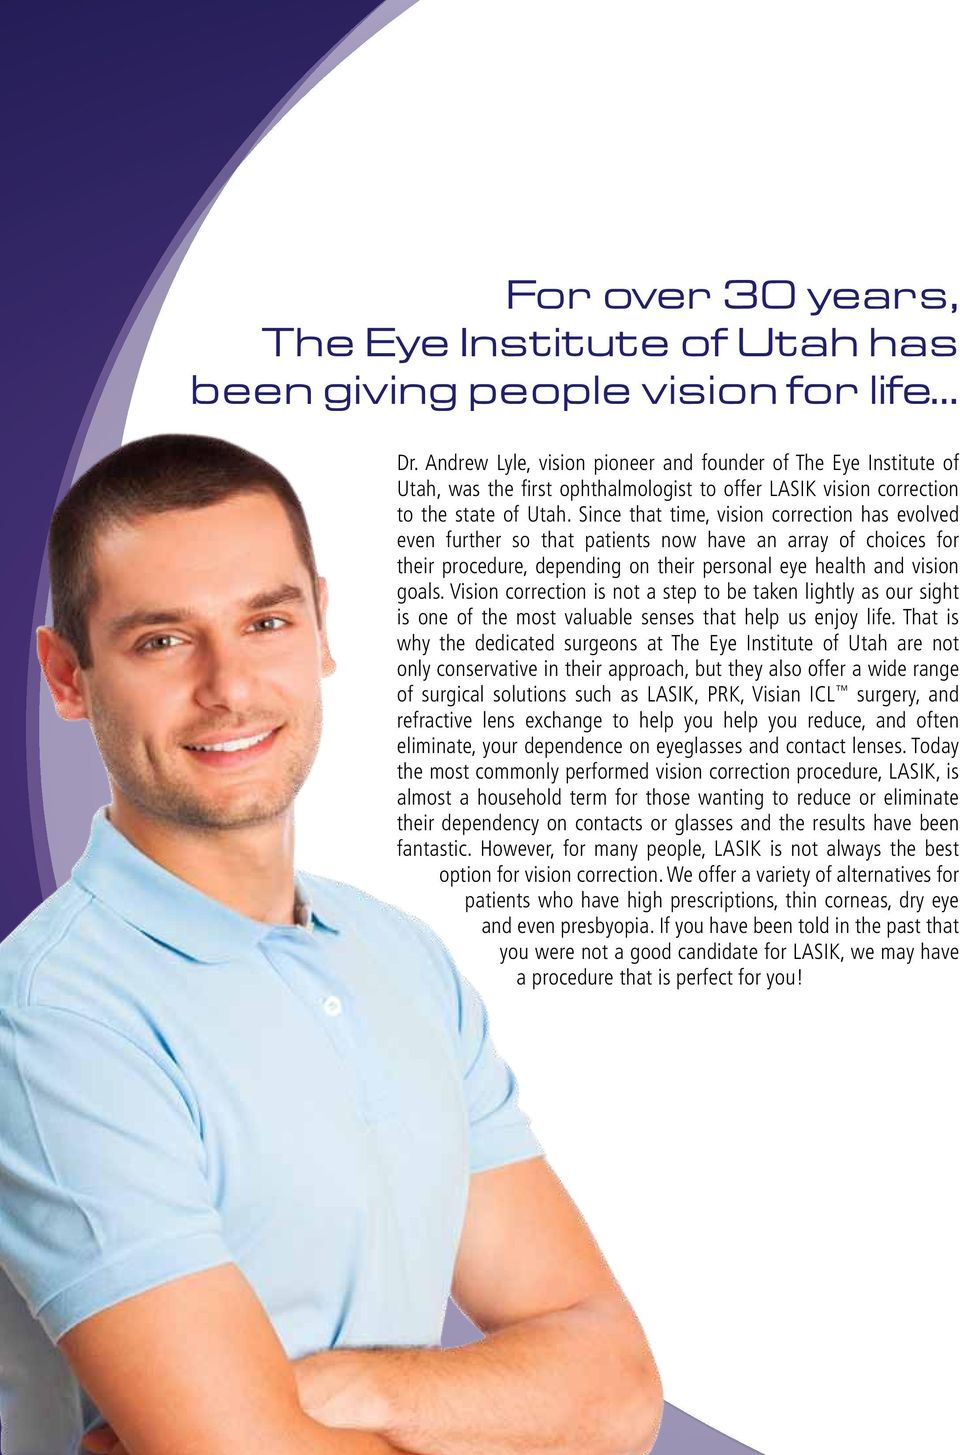 Since that time, vision correction has evolved even further so that patients now have an array of choices for their procedure, depending on their personal eye health and vision goals.